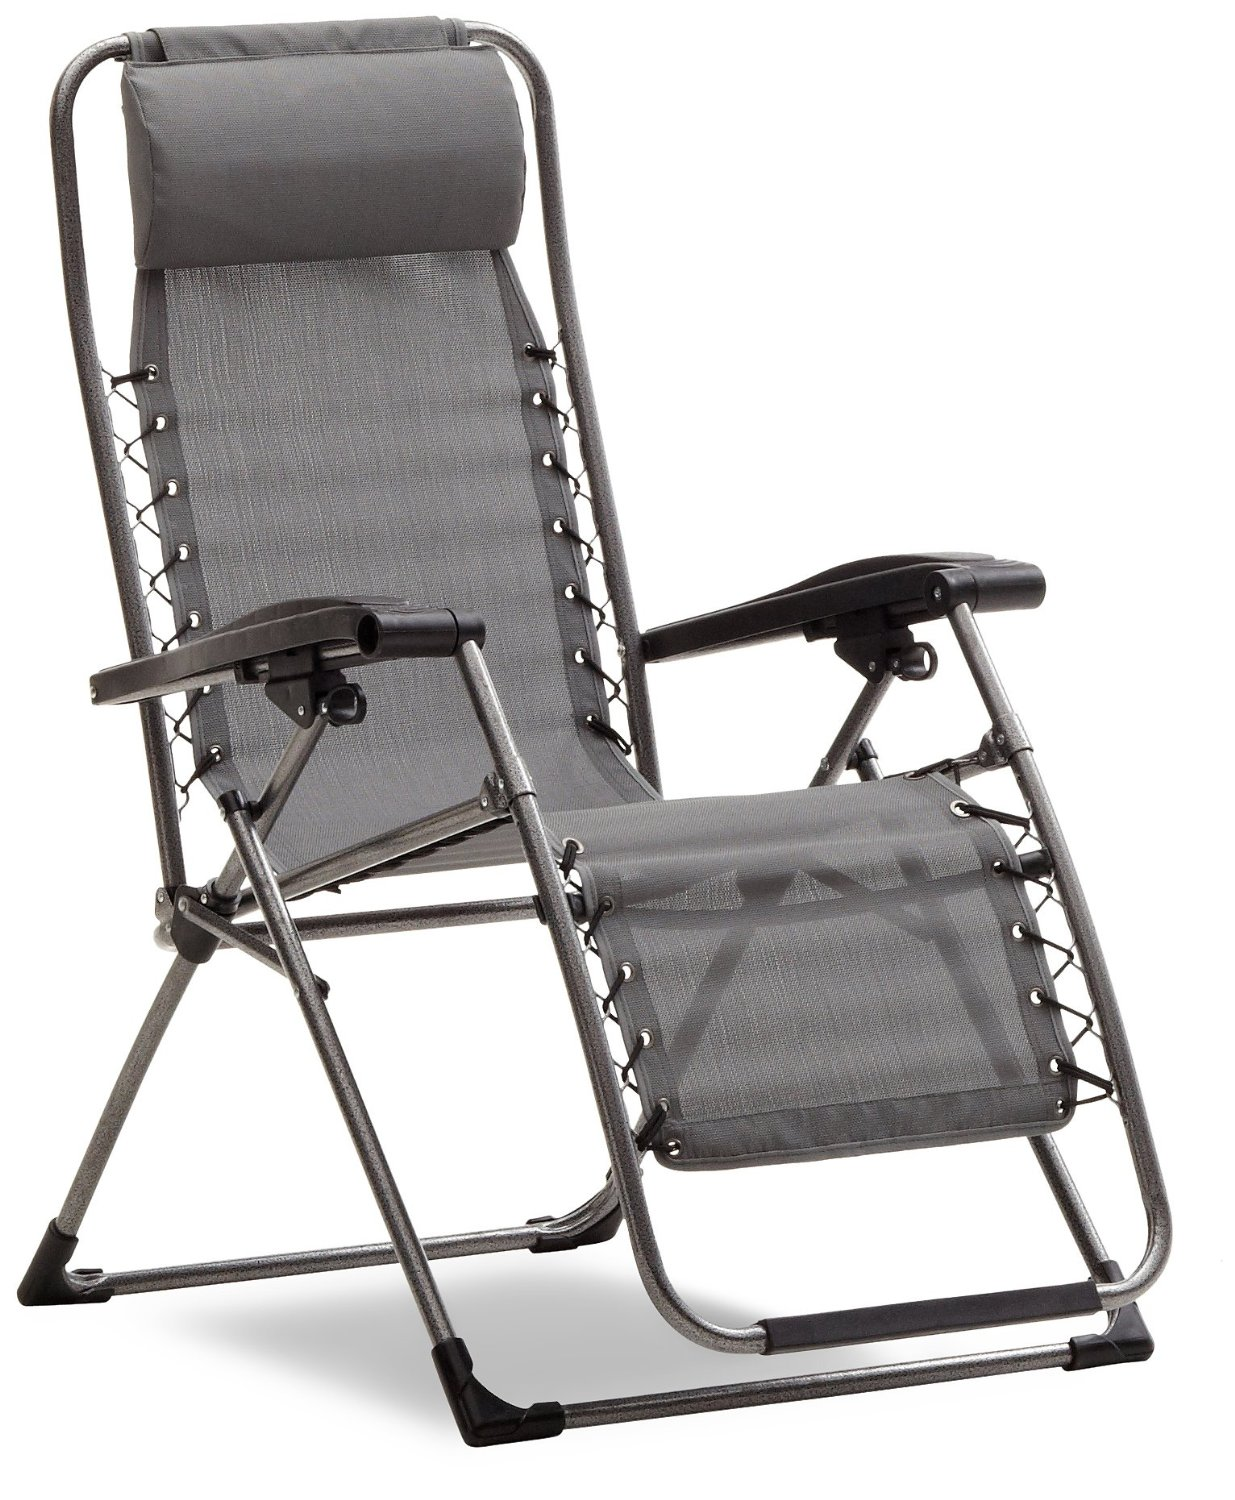 anti gravity lawn chair graco tablefit high cover strathwood adjustable recliners 49 99 from